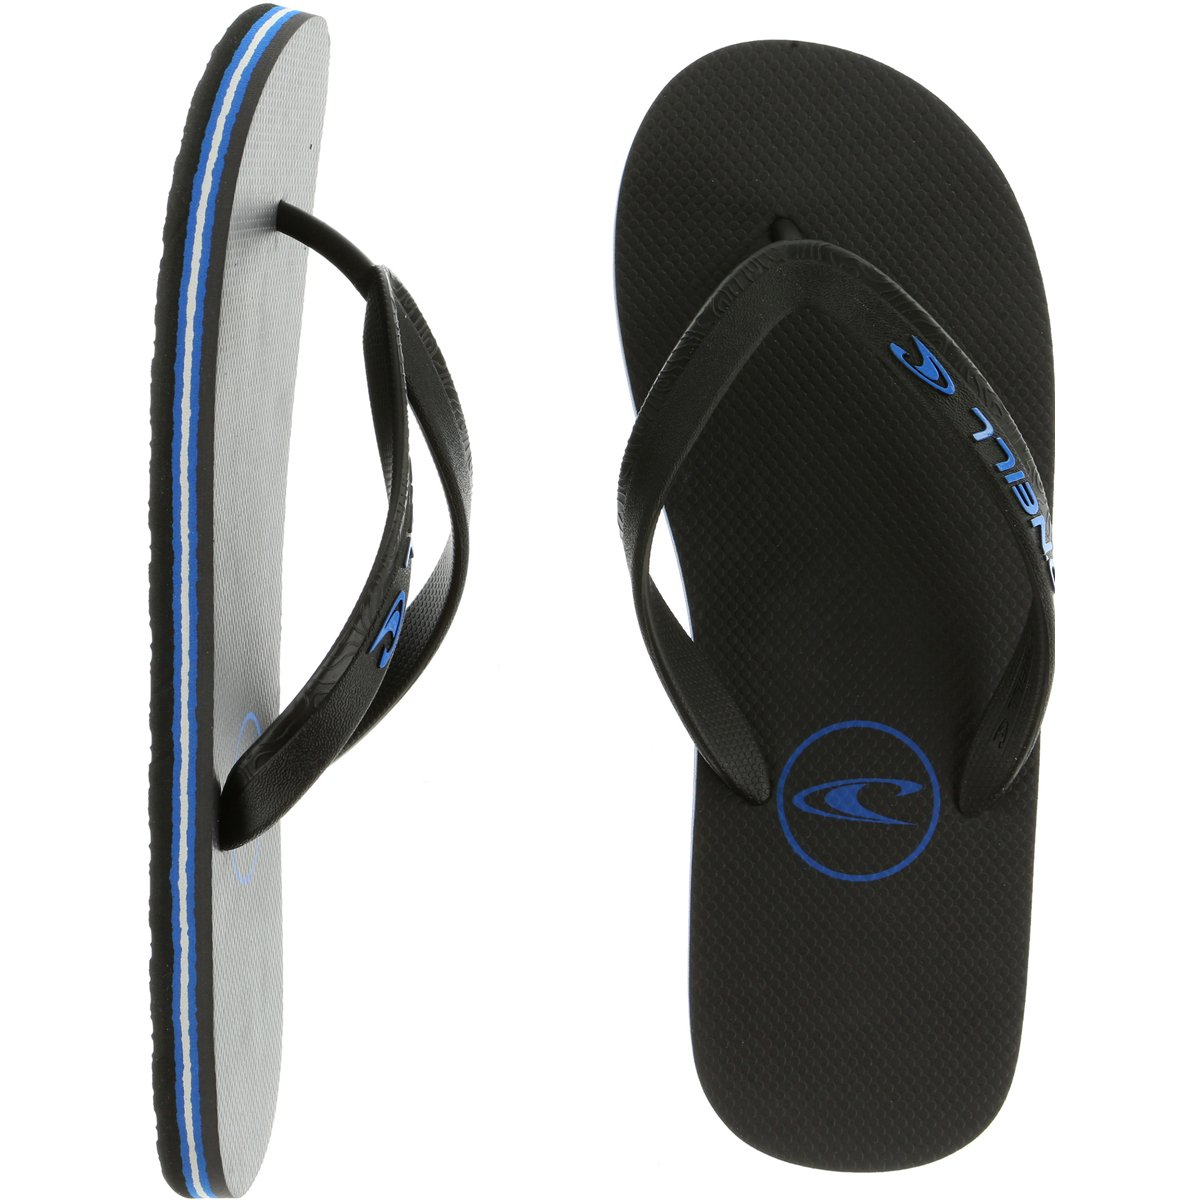 3bbd0197c Amazon.com  O Neill Men s Friction Flip Flop  Shoes